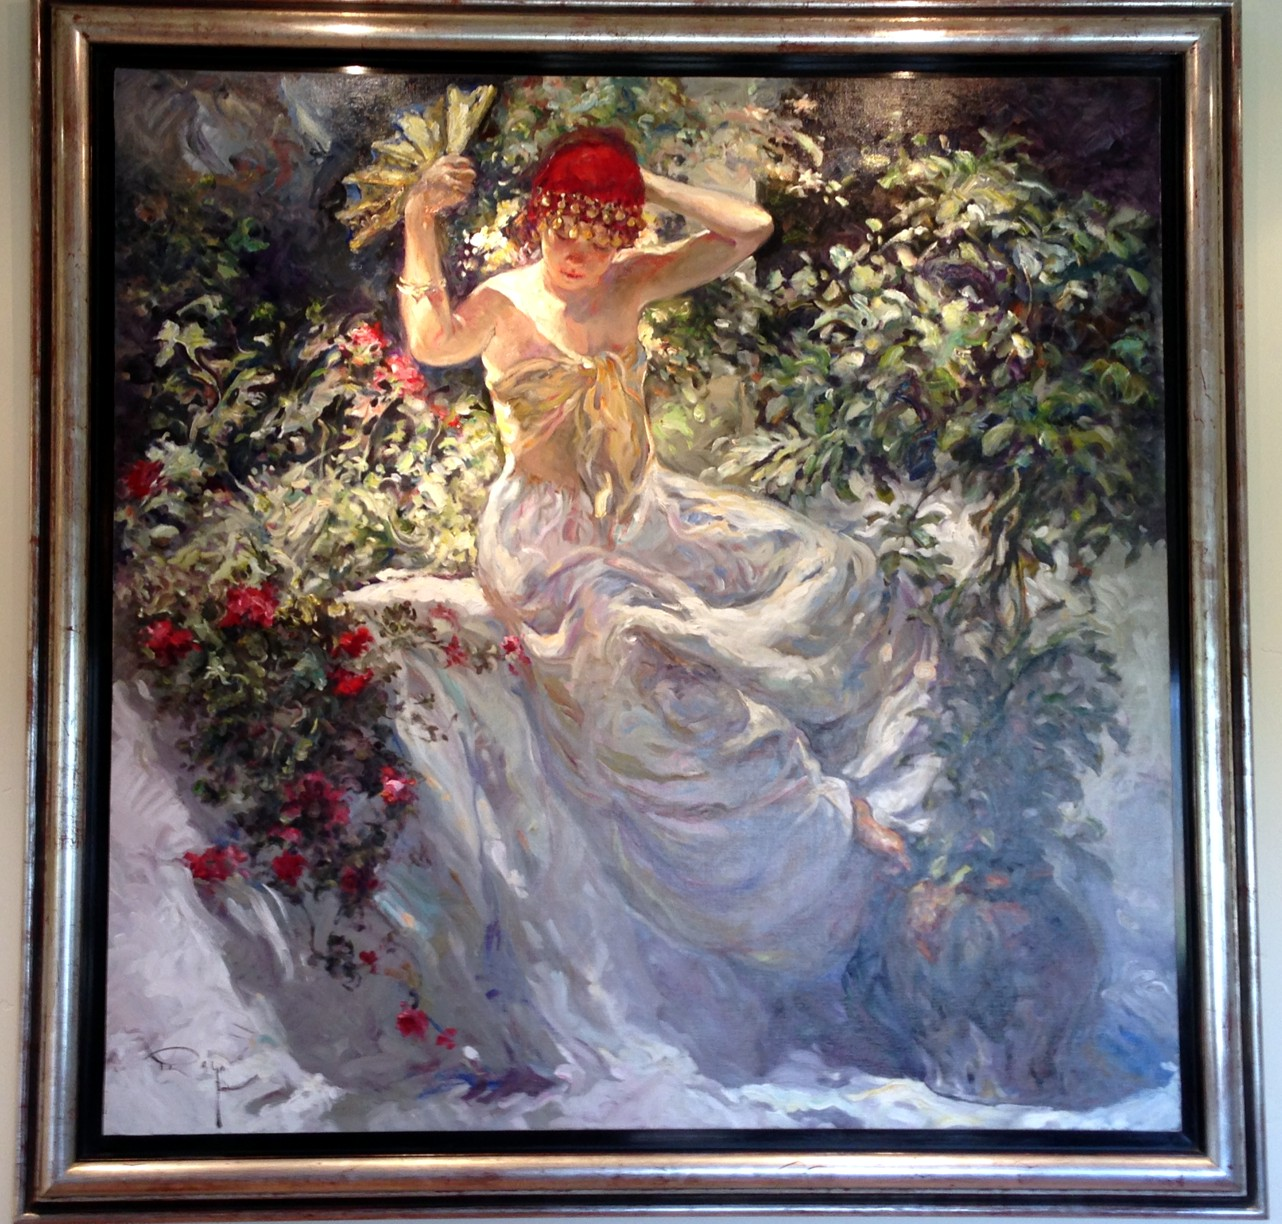 Perla Y Escarlata Original Oil on Canvas Painting Fine Art by Jose Royo